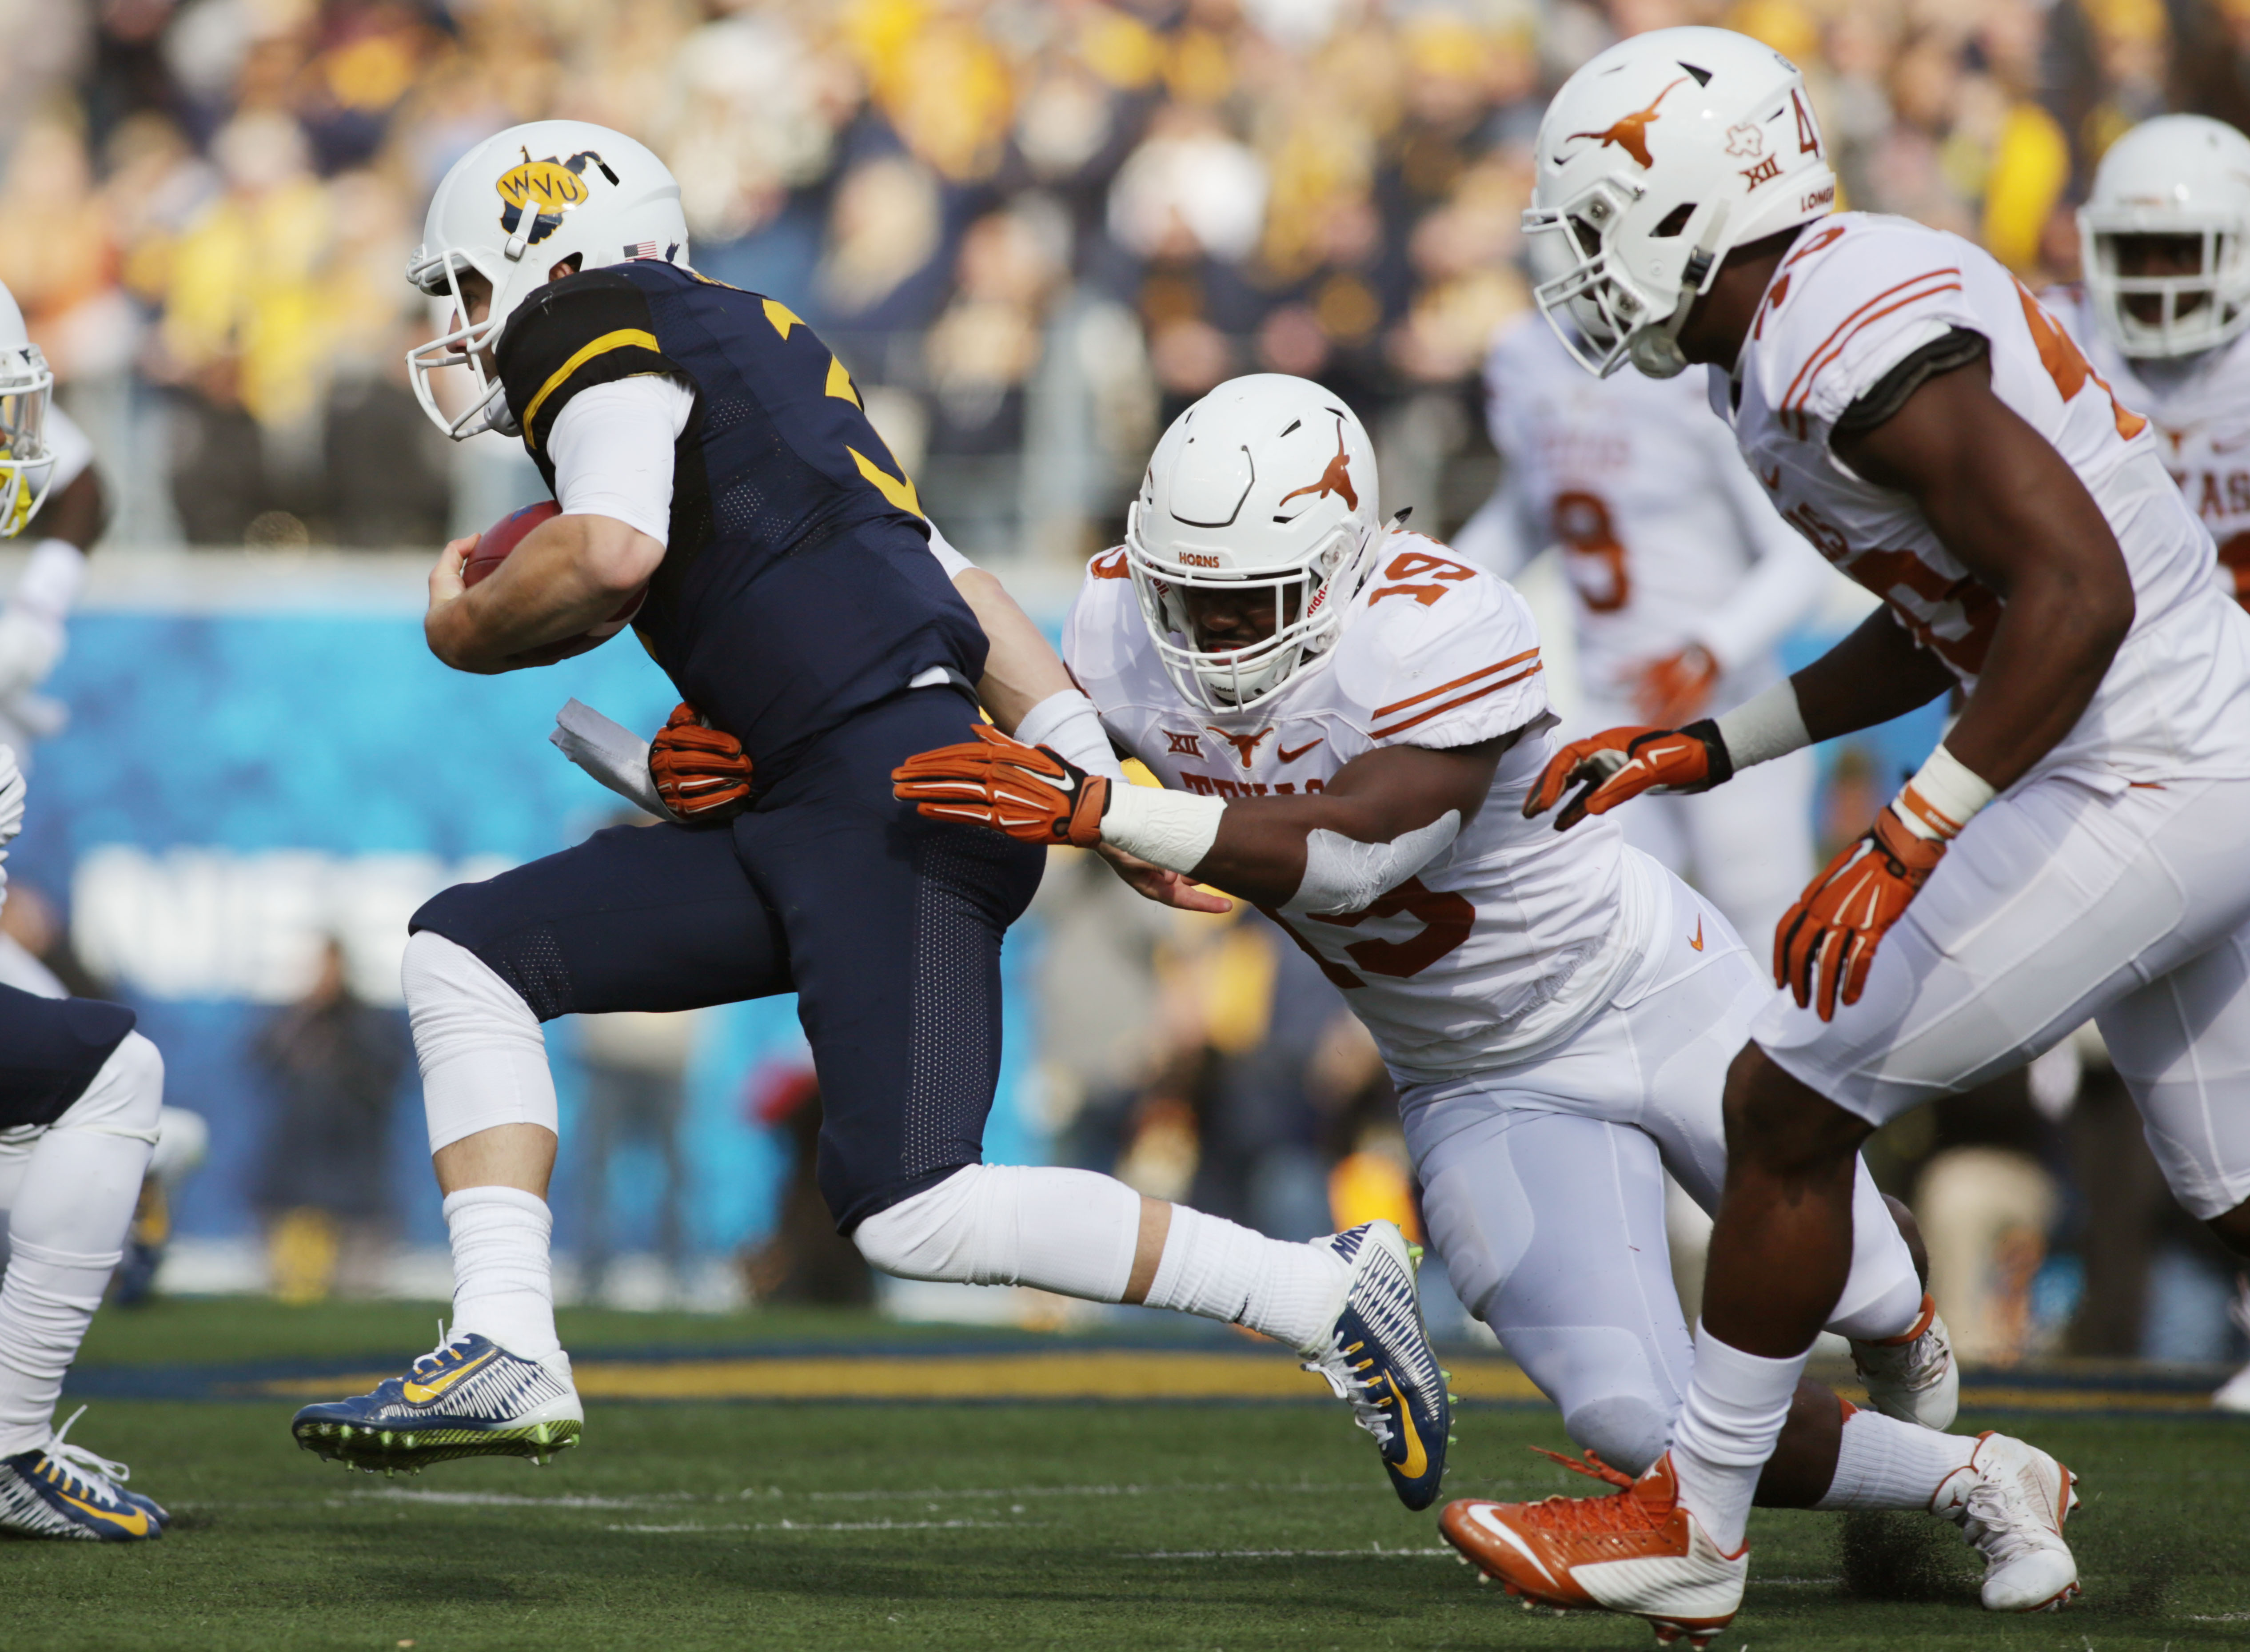 West Virginia quarterback Skyler Howard (3) is sacked by Texas linebacker Peter Jinkens (19) during the first half/ of an NCAA college football game, Saturday, Nov. 14, 2015, in Morgantown, W.Va. (AP Photo/Raymond Thompson)